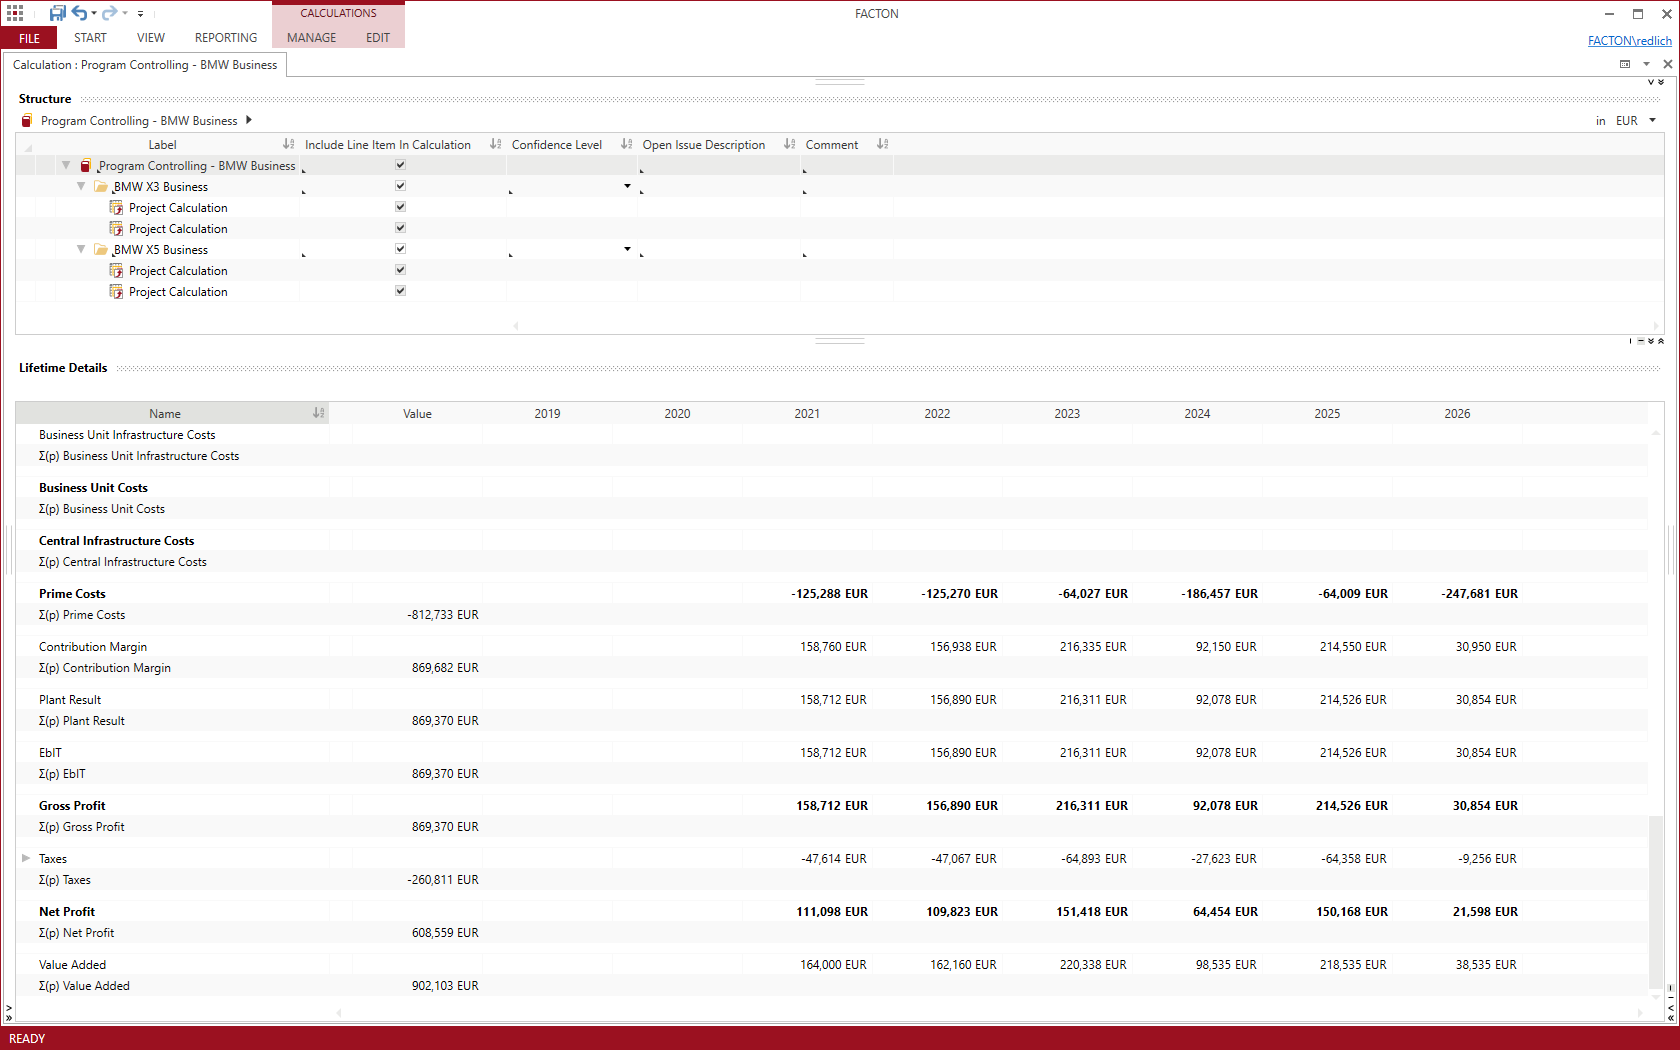 screenshot-facton-epc-cost-controlling-multiproject